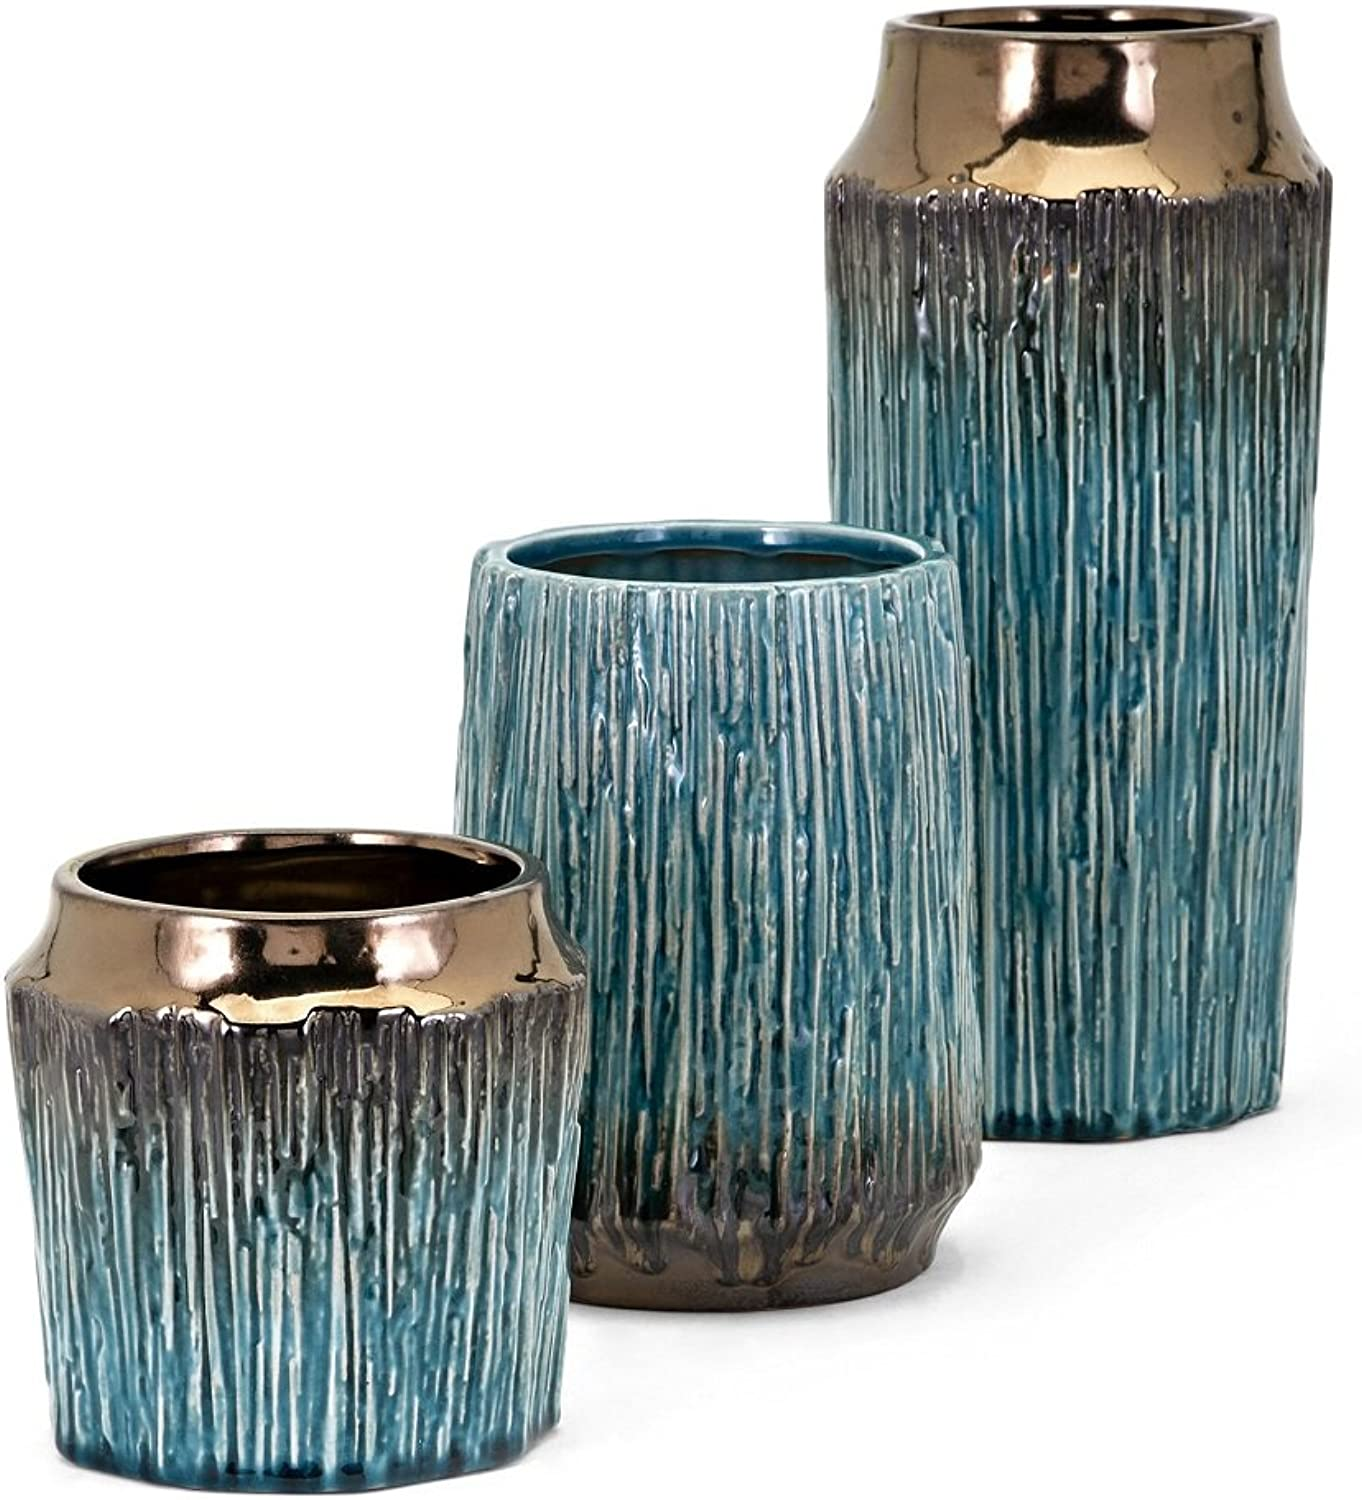 Imax 13733-3 Brenton Vases, Set of 3, Bold Textured Bronze and Turquoise Containers